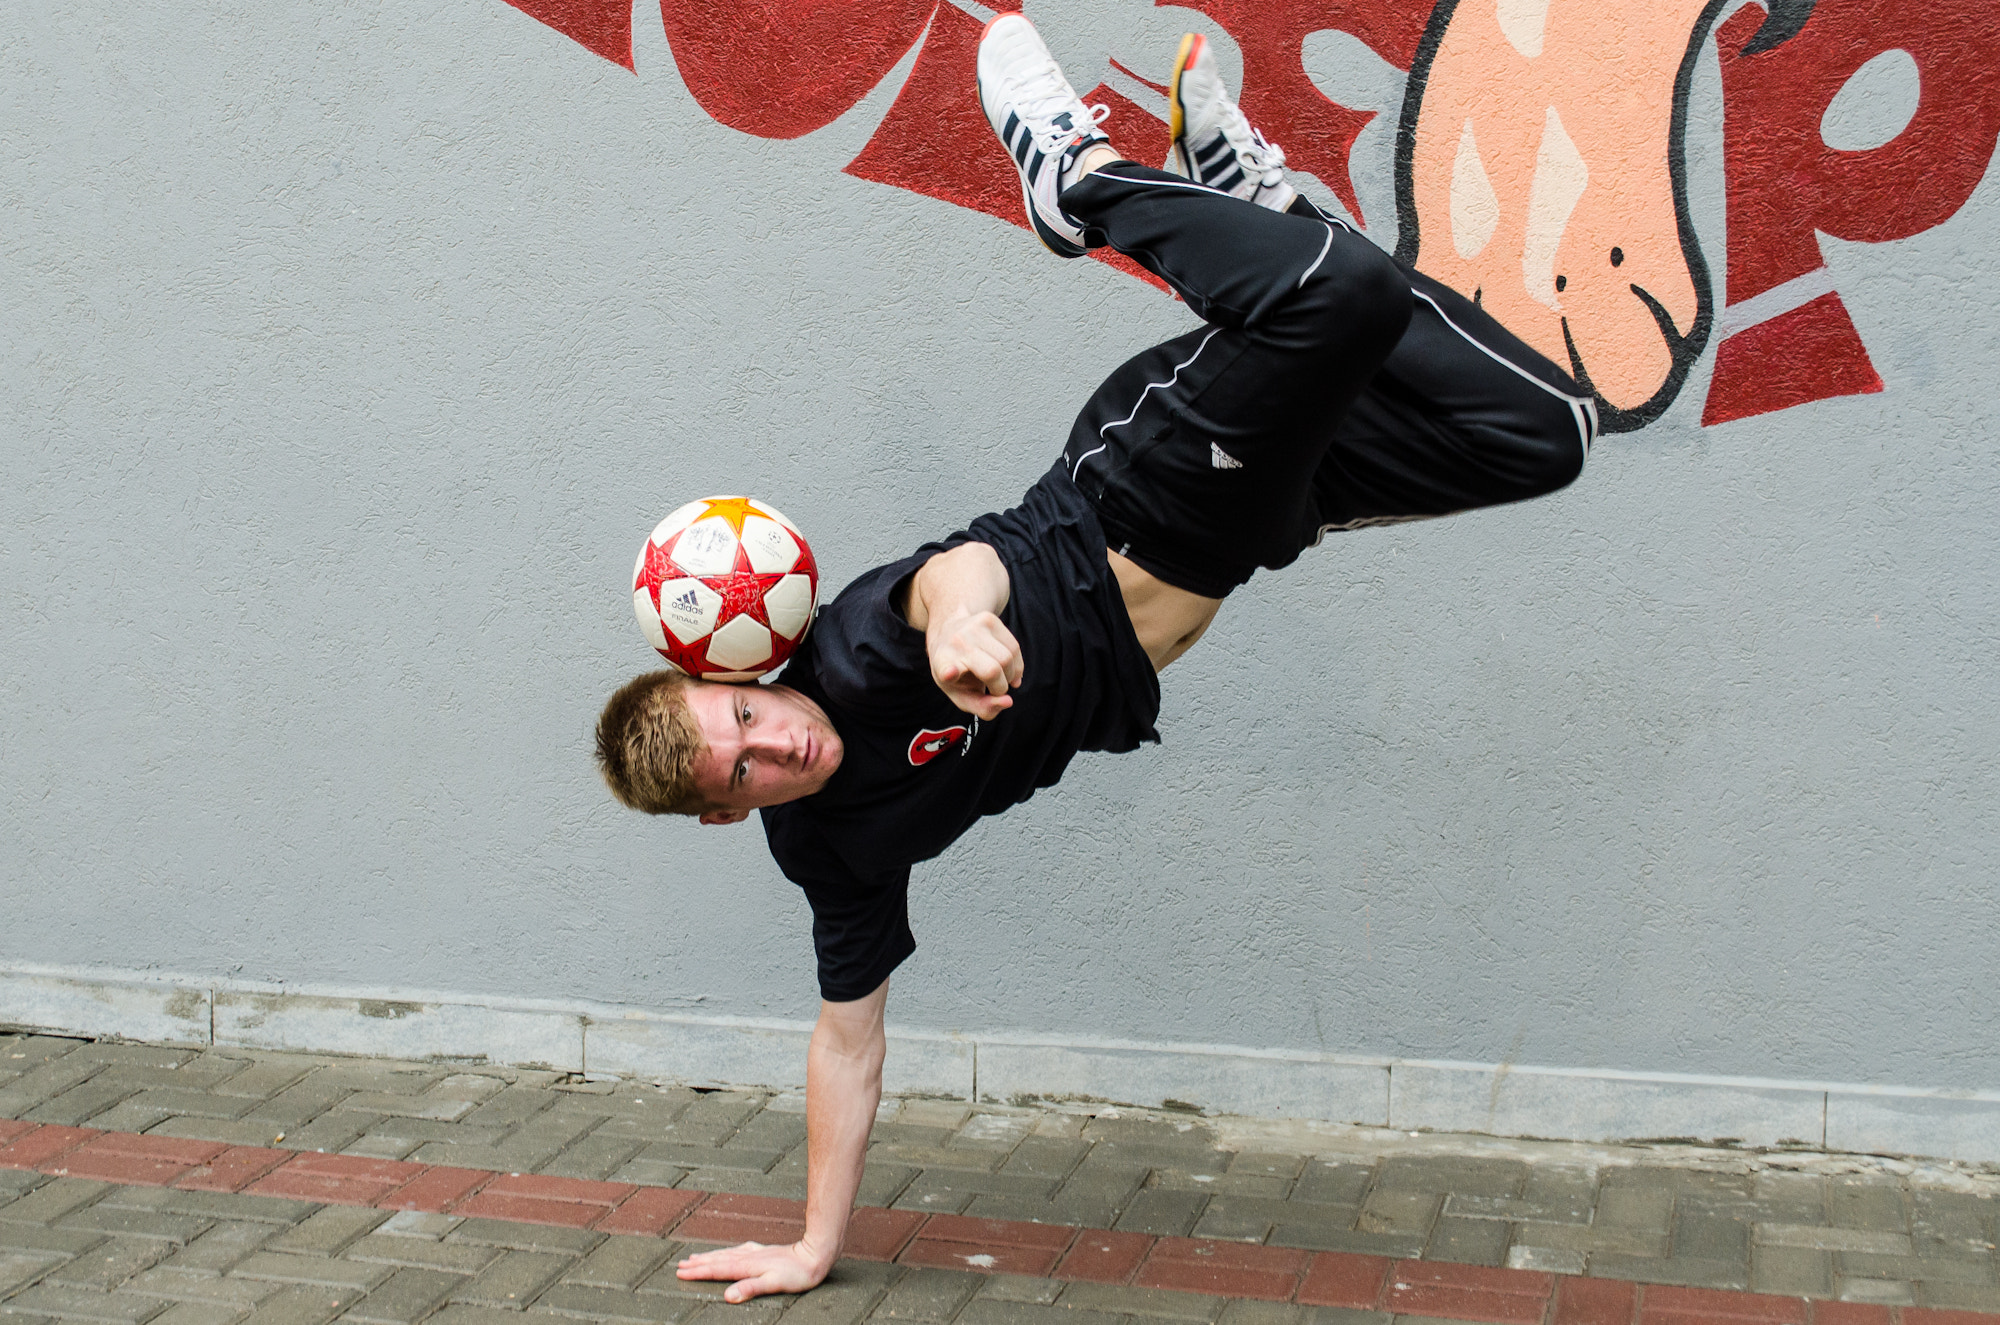 Photograph Freestyle Football Champ by Sarah Khalaf on 500px